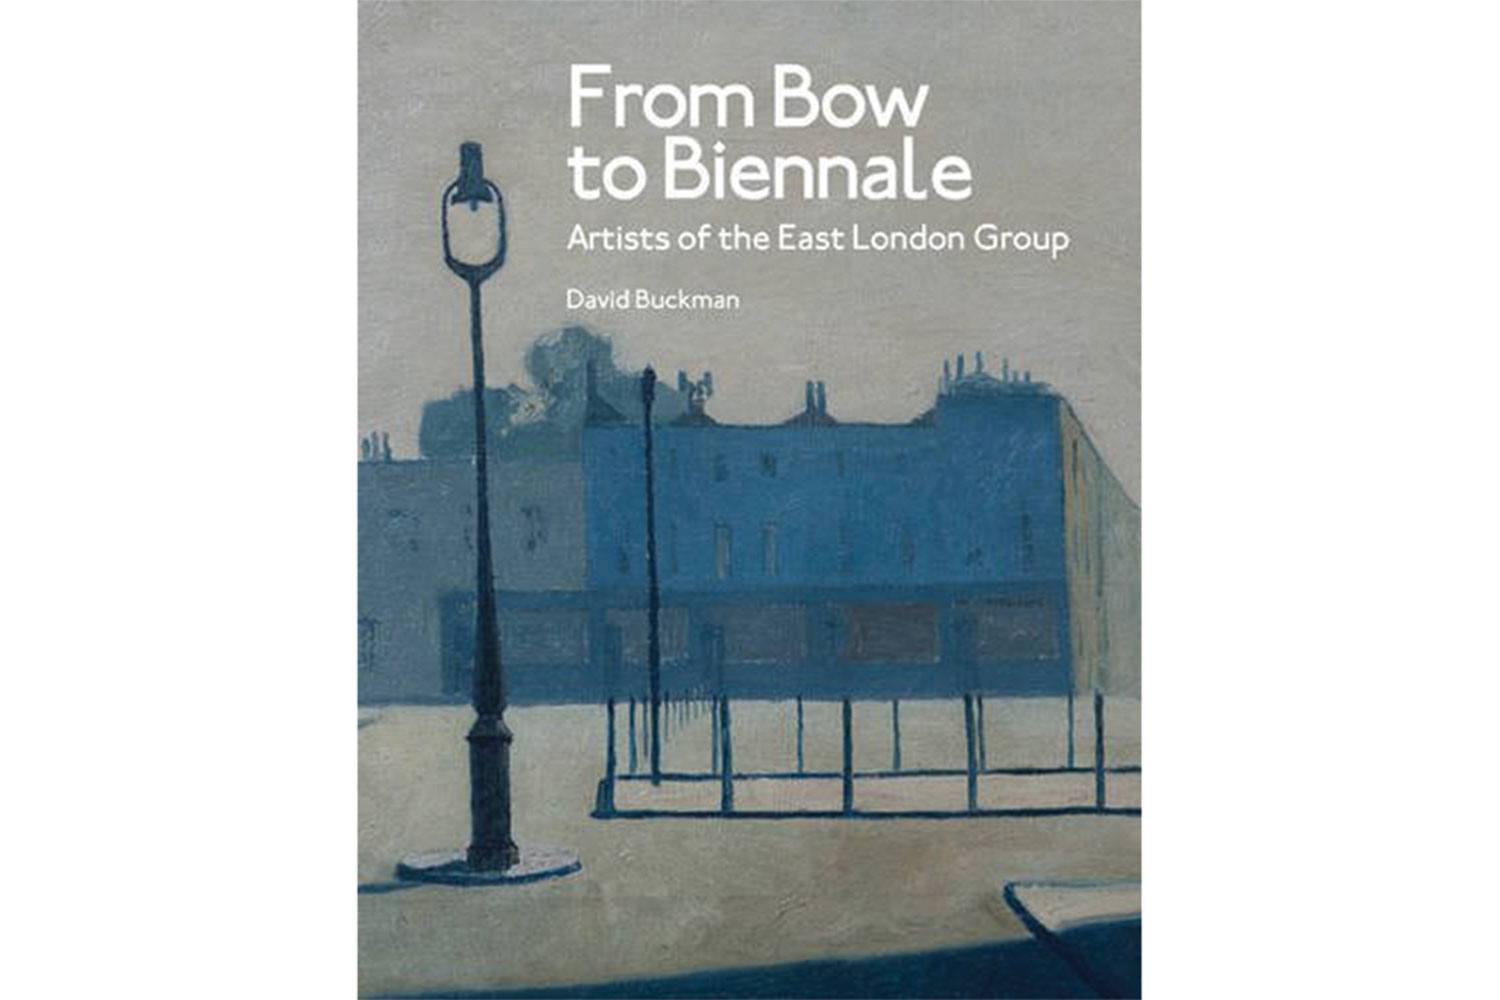 From Bow to Biennale